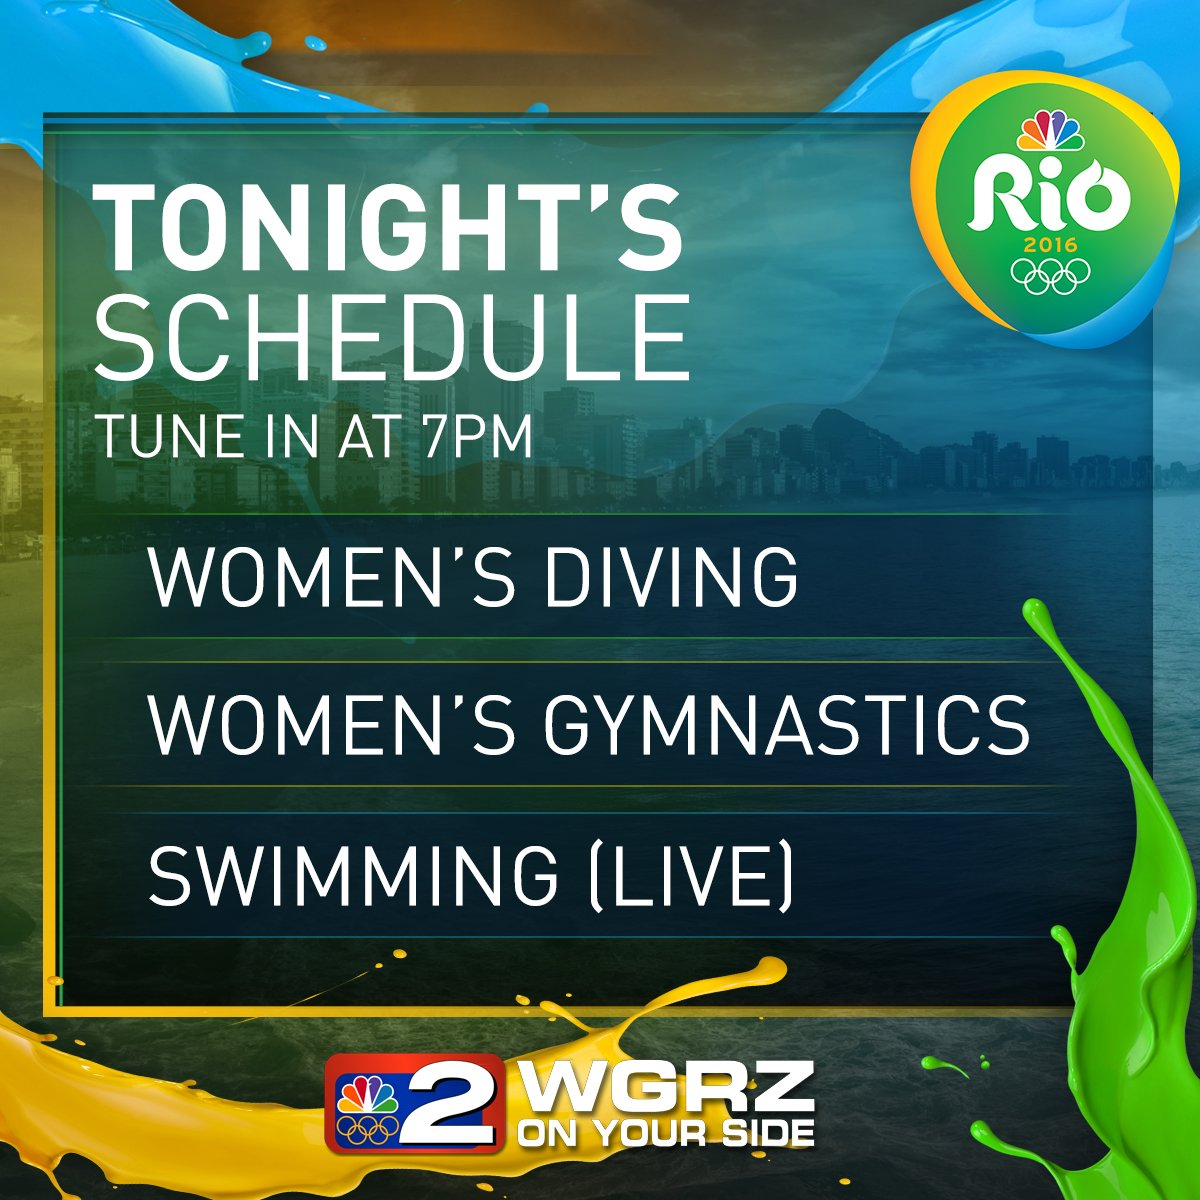 tonight's olympic coverage on nbc channel 2 beginning at 7pm. our